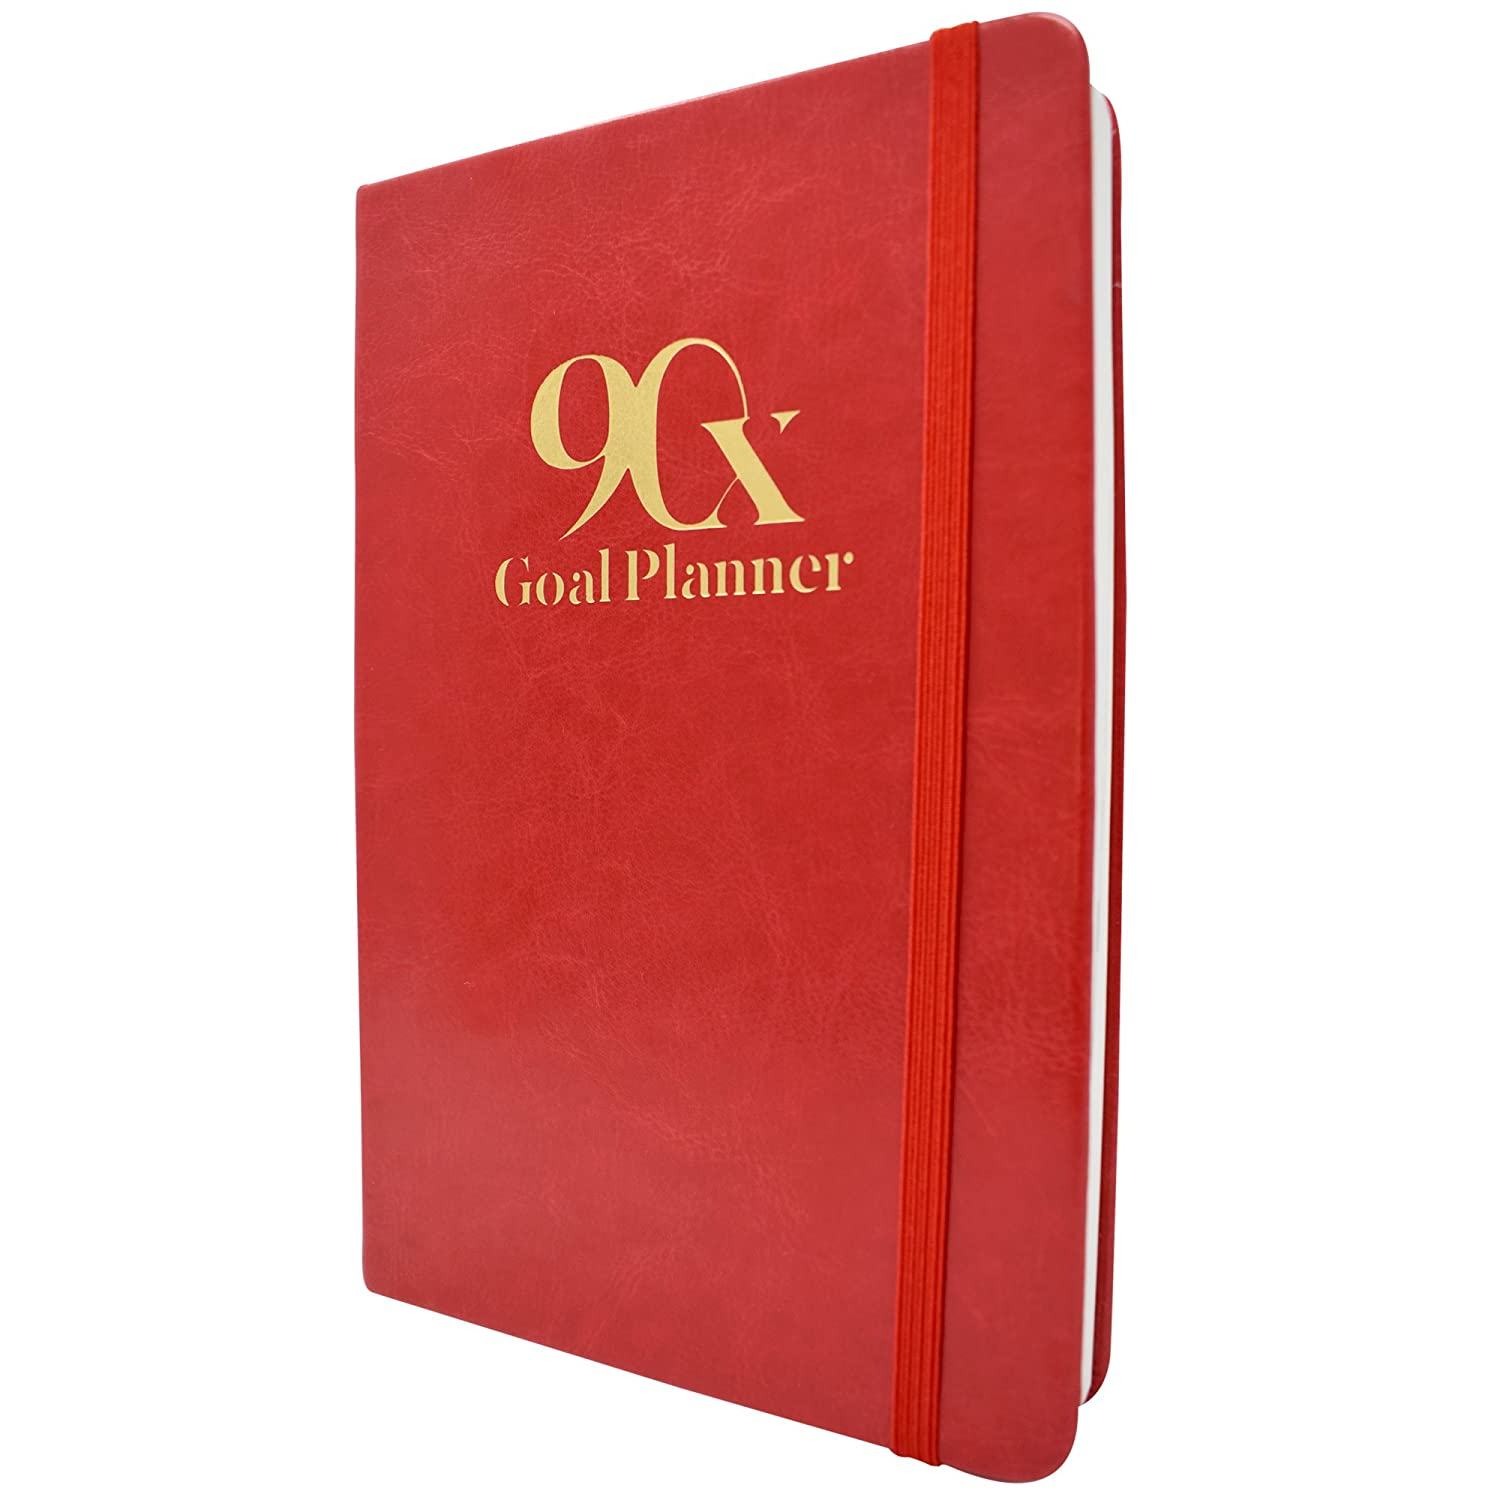 90x goal planner superior self journal for achieving goals and